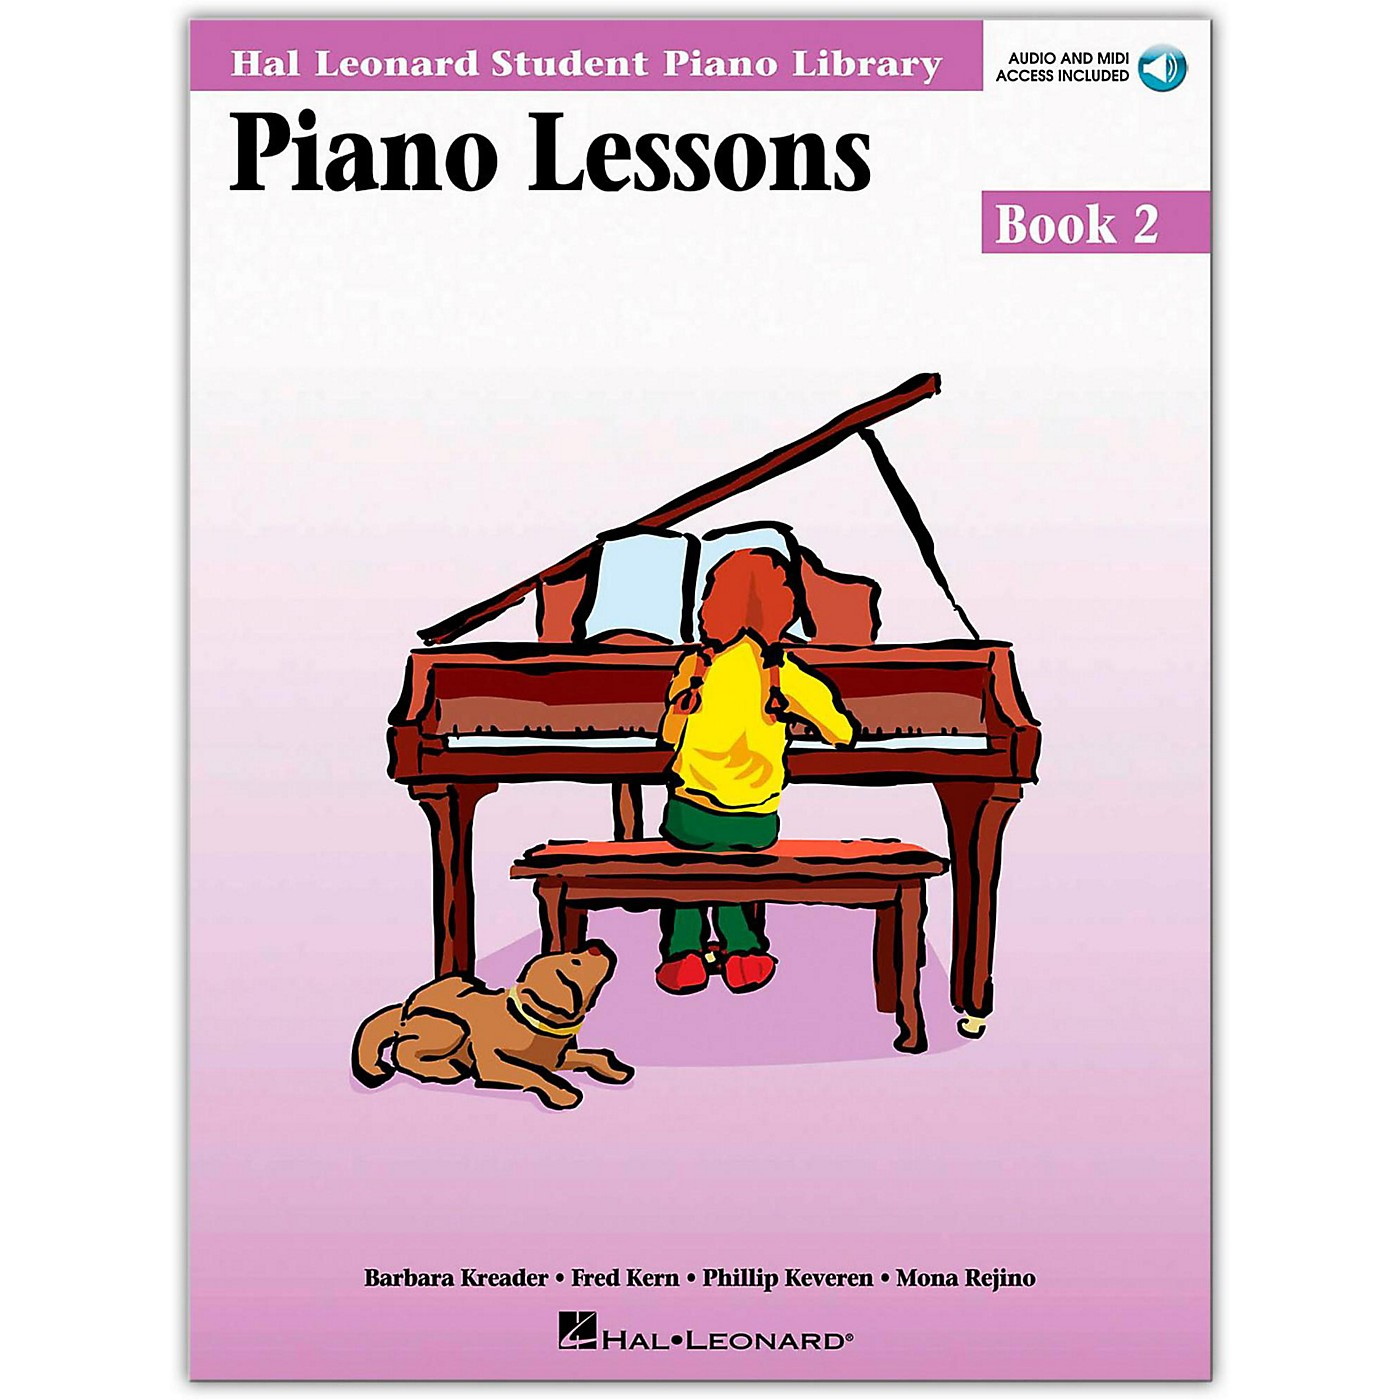 Hal Leonard Piano Lessons Book 2 Book/Online Audio Package thumbnail